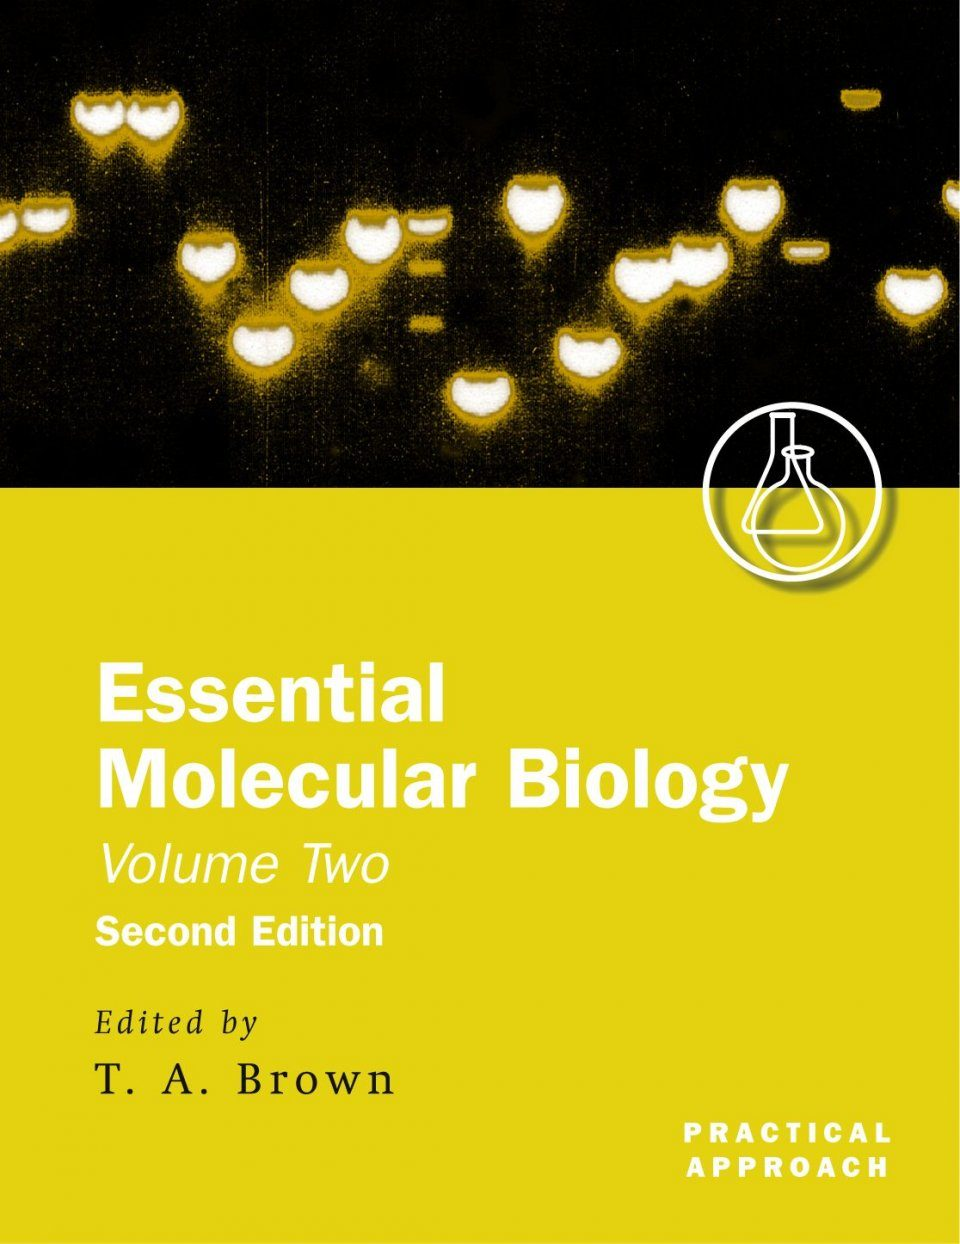 Essential Molecular Biology: A Practical Approach Volume 2